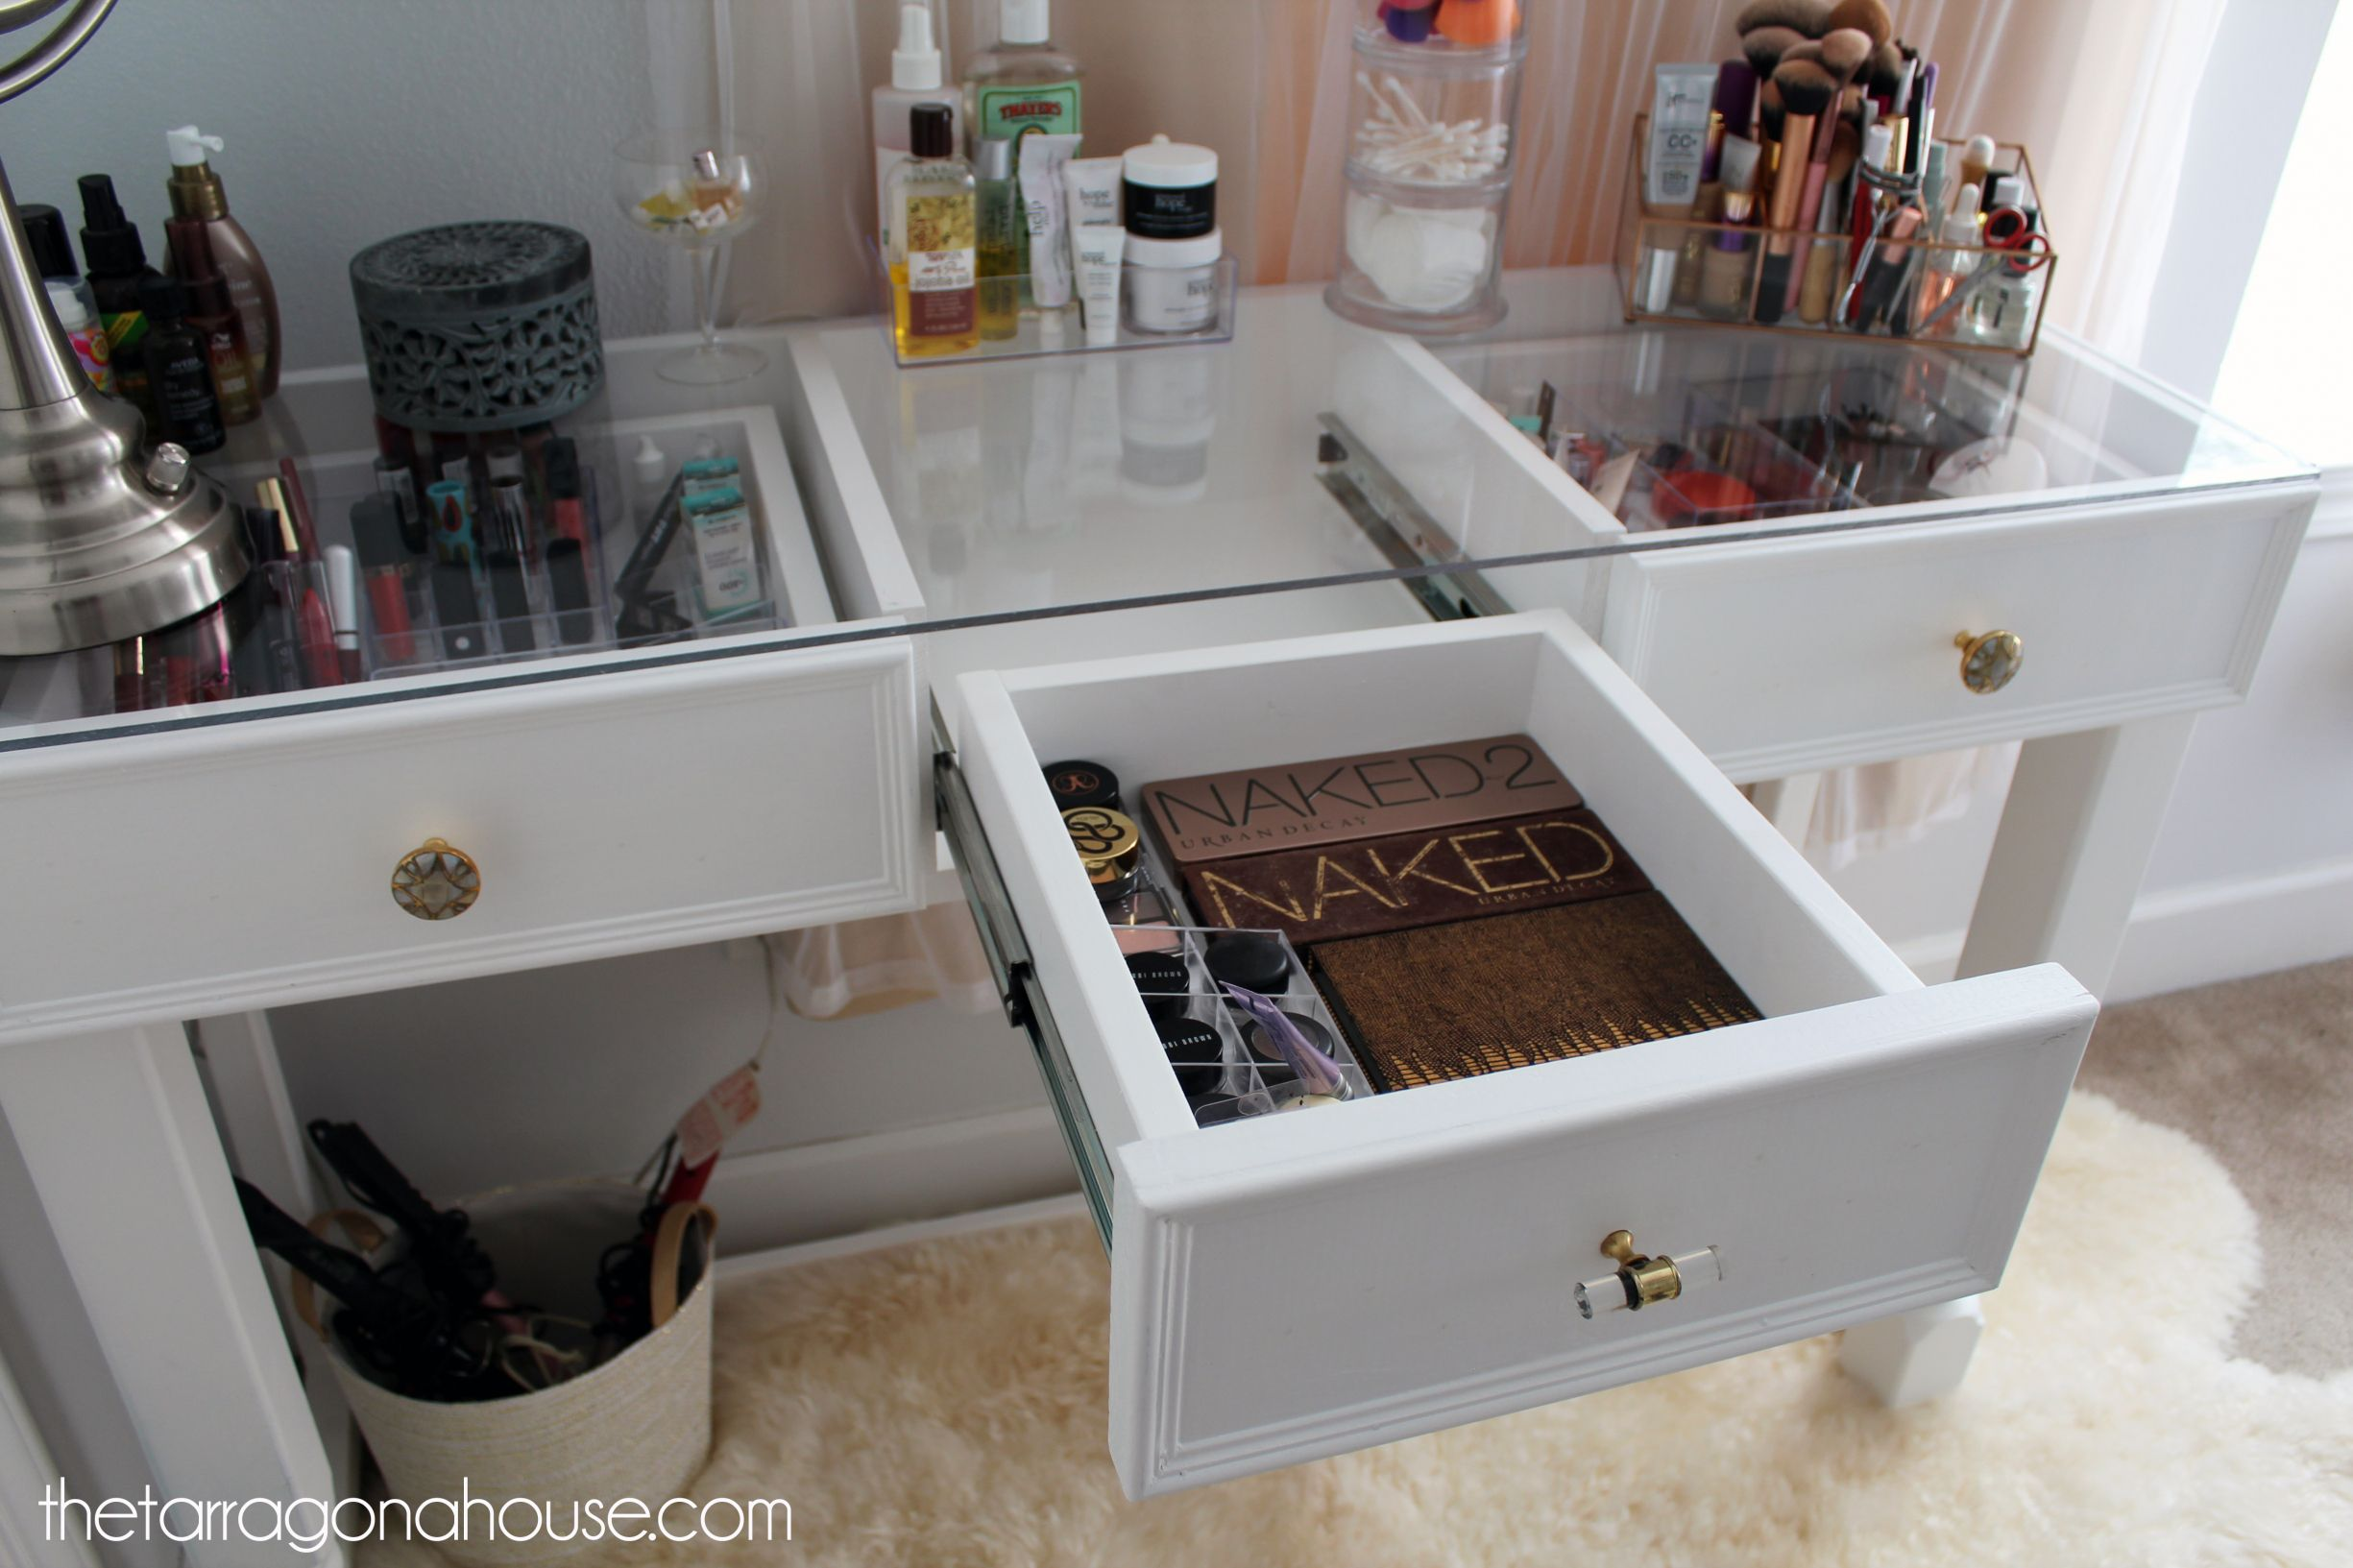 70 Glass Top Desks With Drawers Wall Decor Ideas For Desk Check More At Http Michael Malarkey Com Glass Top D Glass Top Vanity Diy Vanity Diy Vanity Table